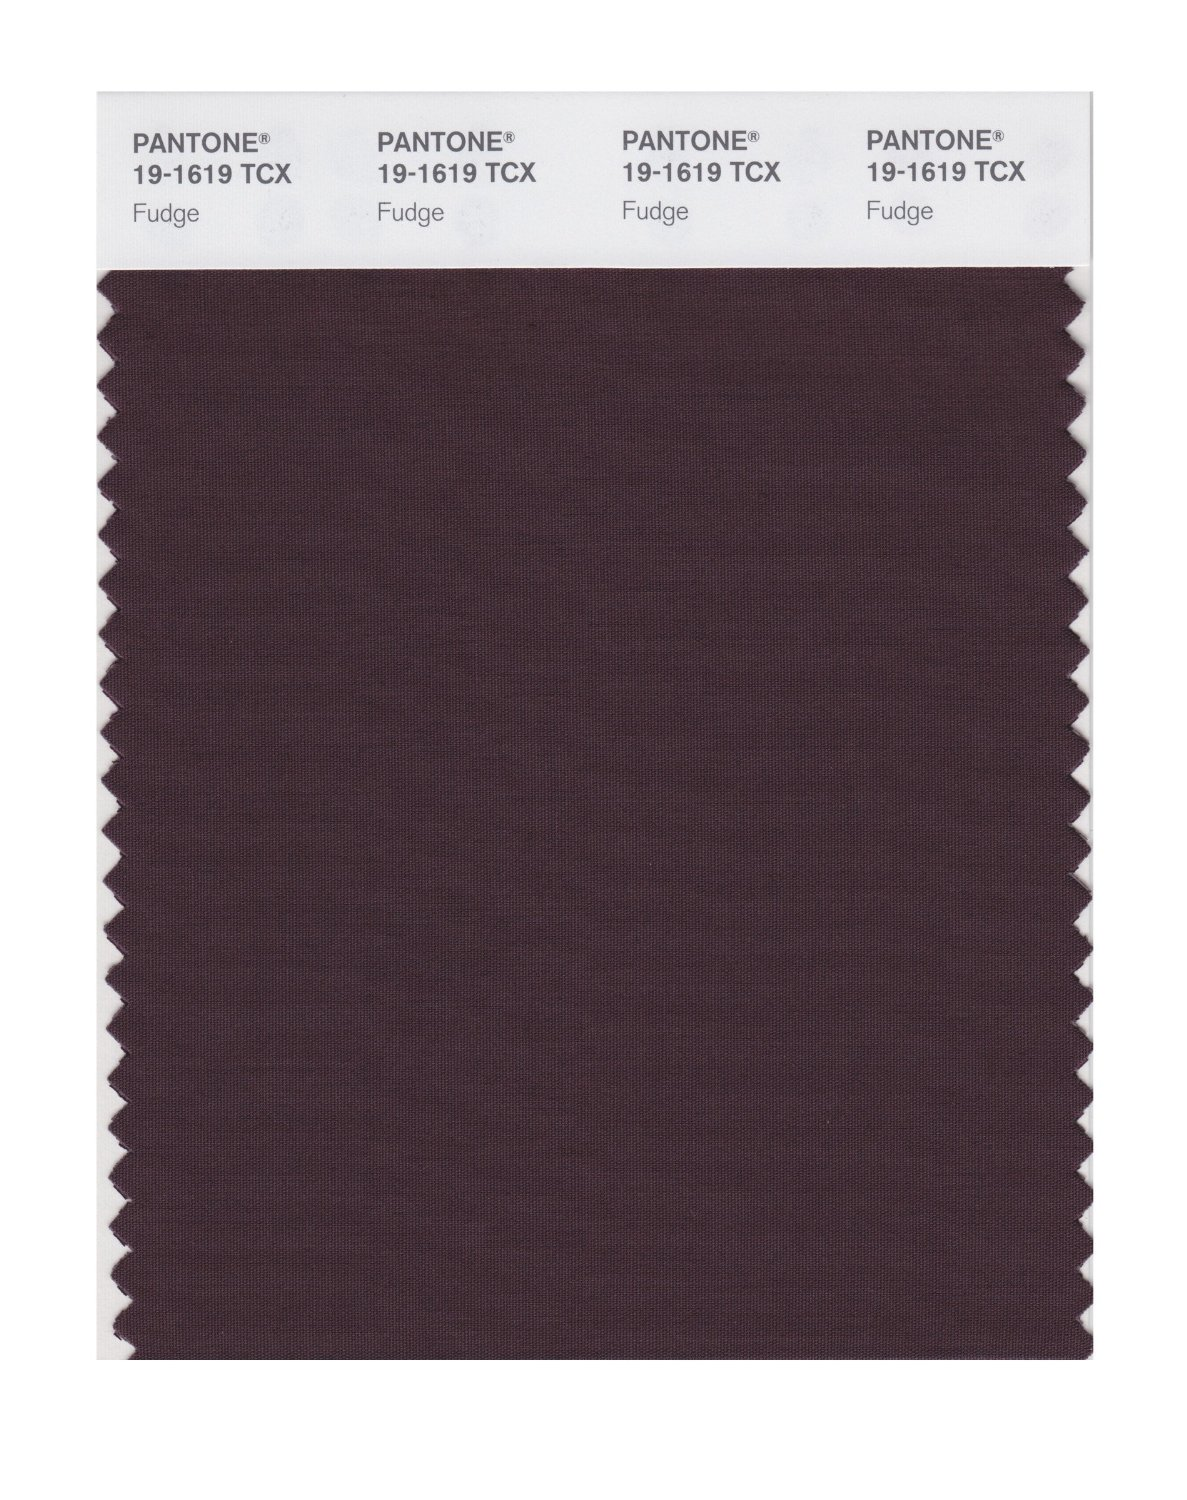 Pantone Smart Swatch 19-1619 Fudge